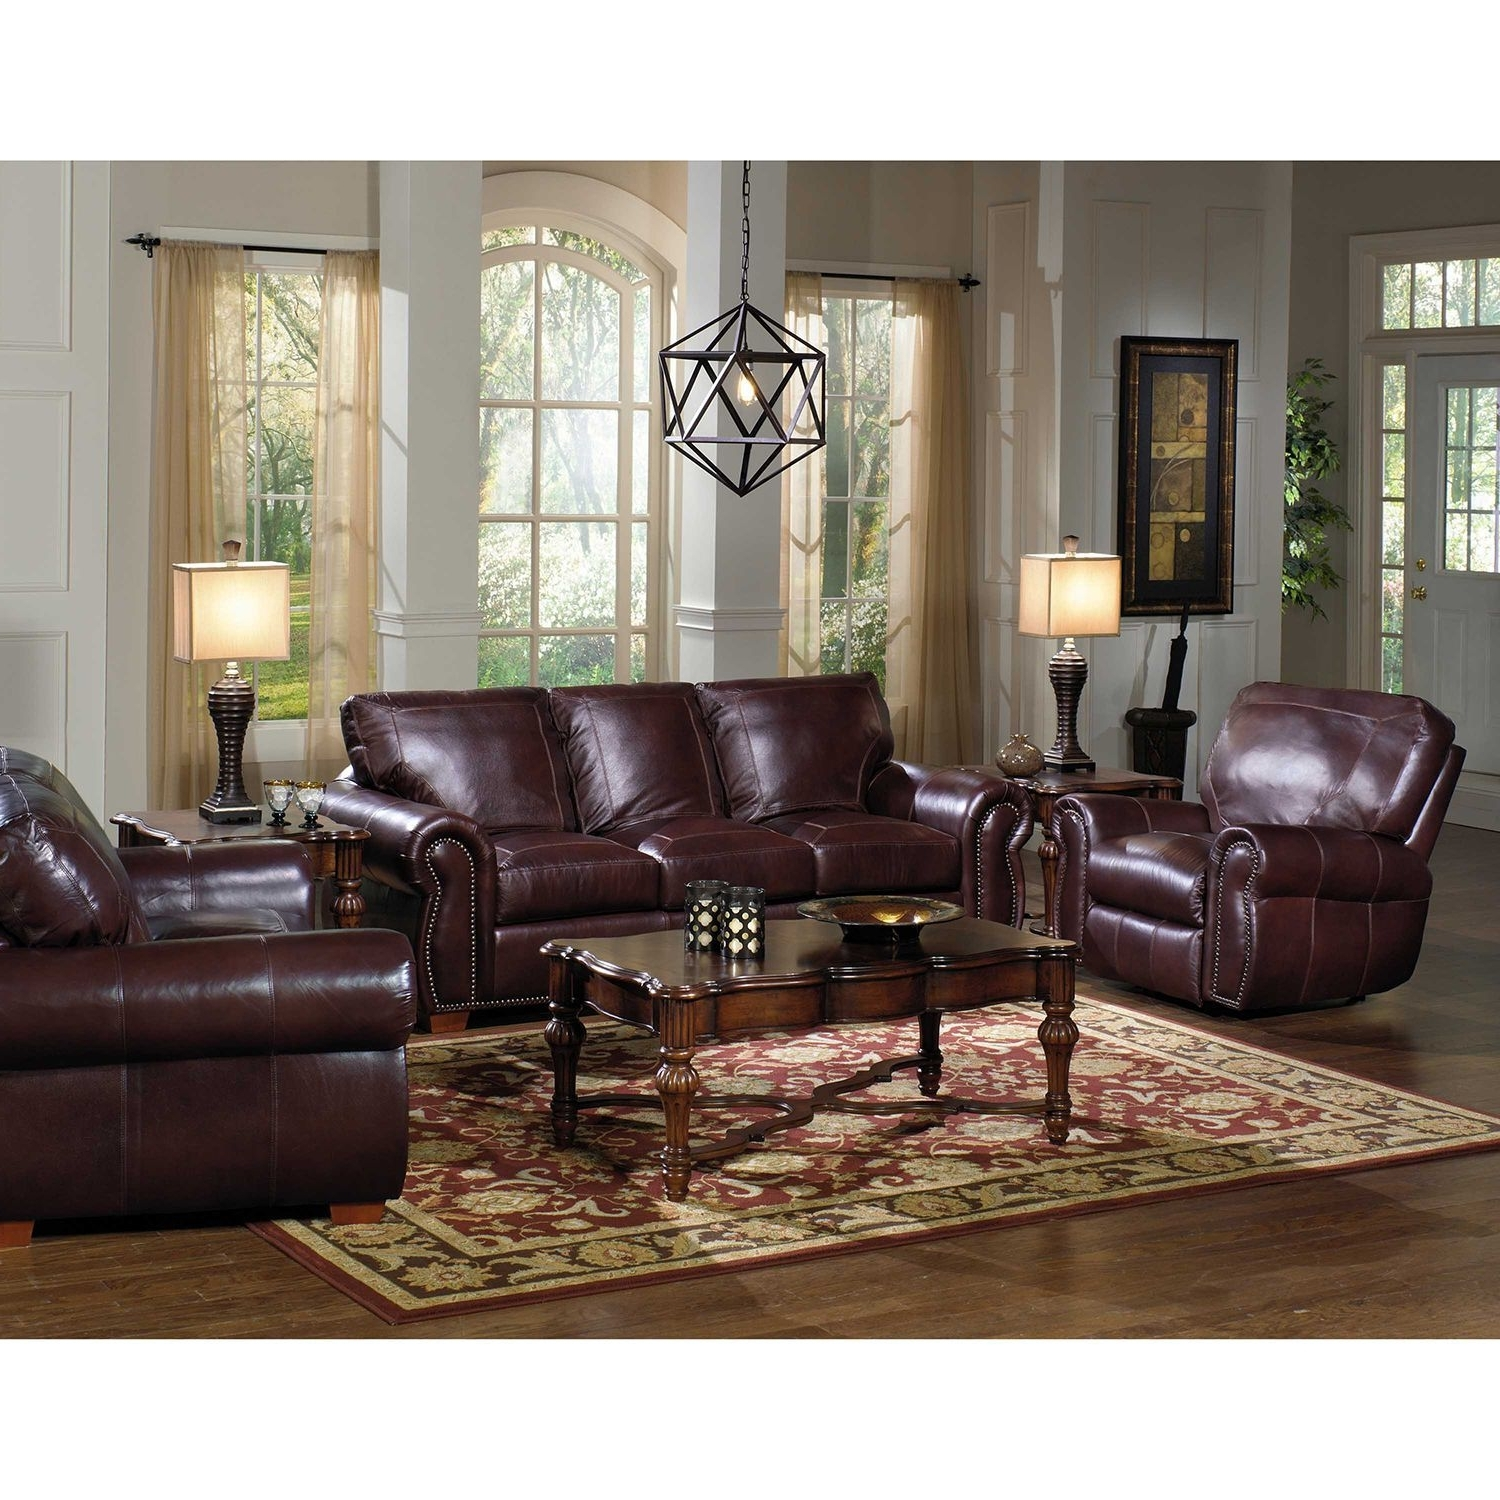 Kingston Top Grain Leather Sofa, Loveseat And Recliner Living Room Within Widely Used Sams Club Sectional Sofas (Gallery 6 of 15)